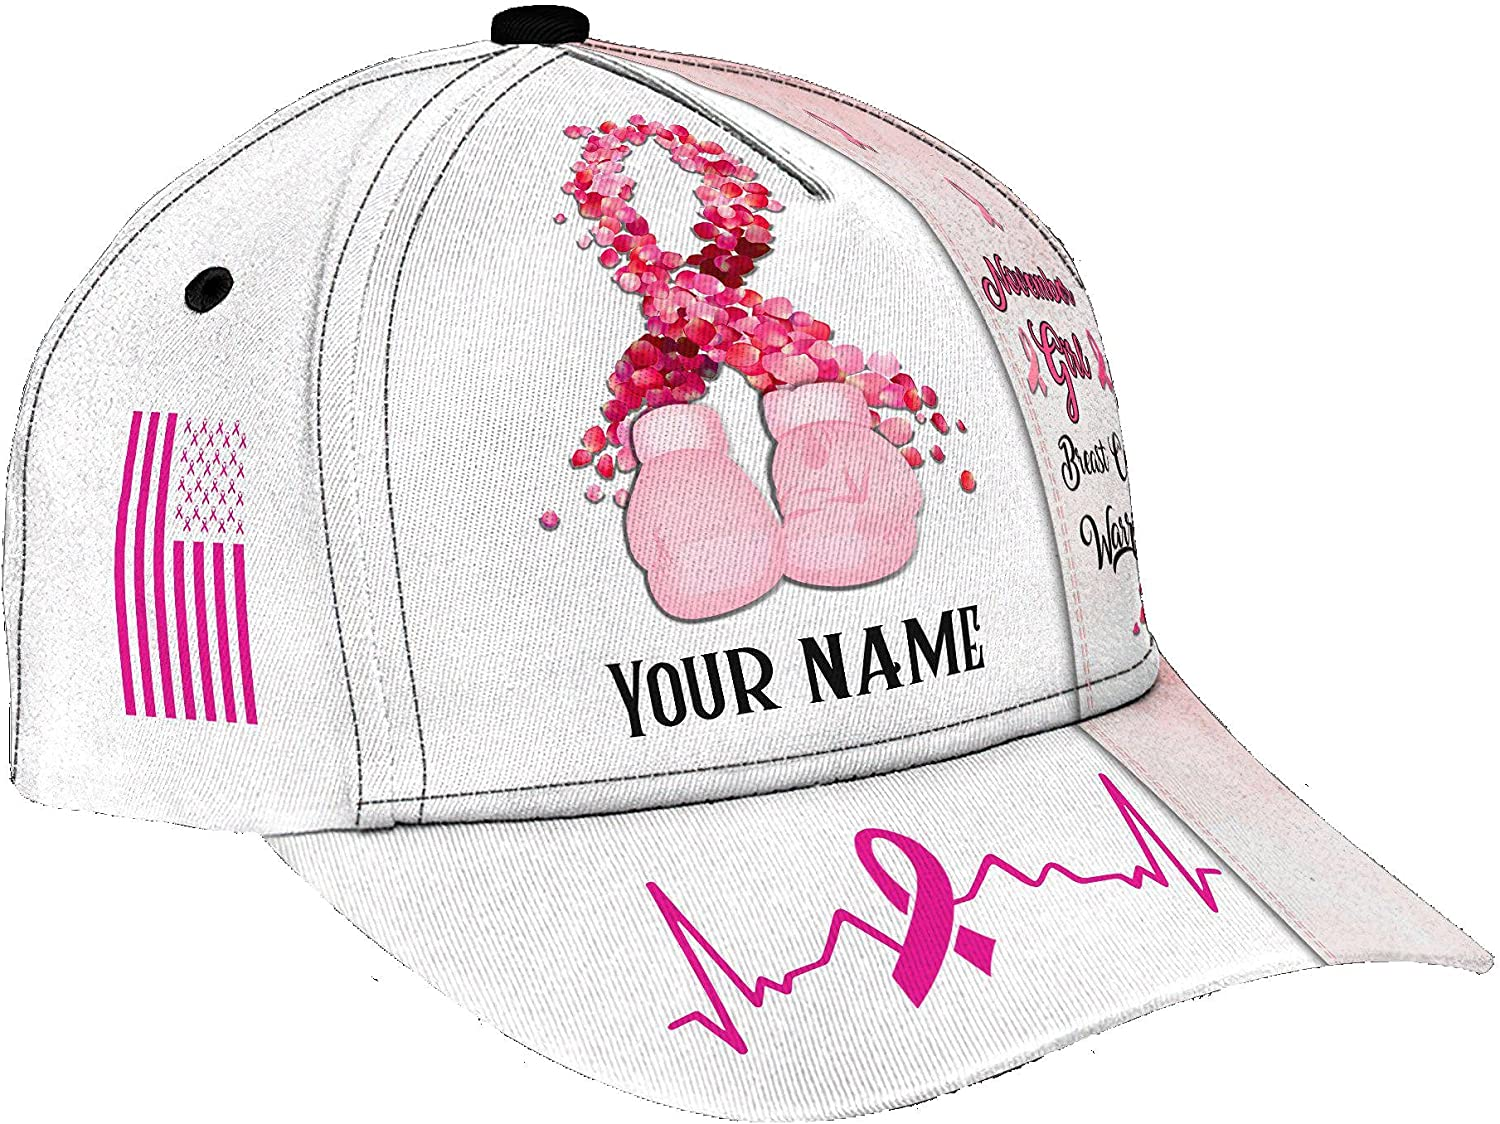 Personalized Name 3D Printed Unisex Cap Hat November Girl Breast Cancer Personalized Name Cap Text Name Customized Classic Cap Snapback Cap Baseball Cap for Men Women Sports Outdoor